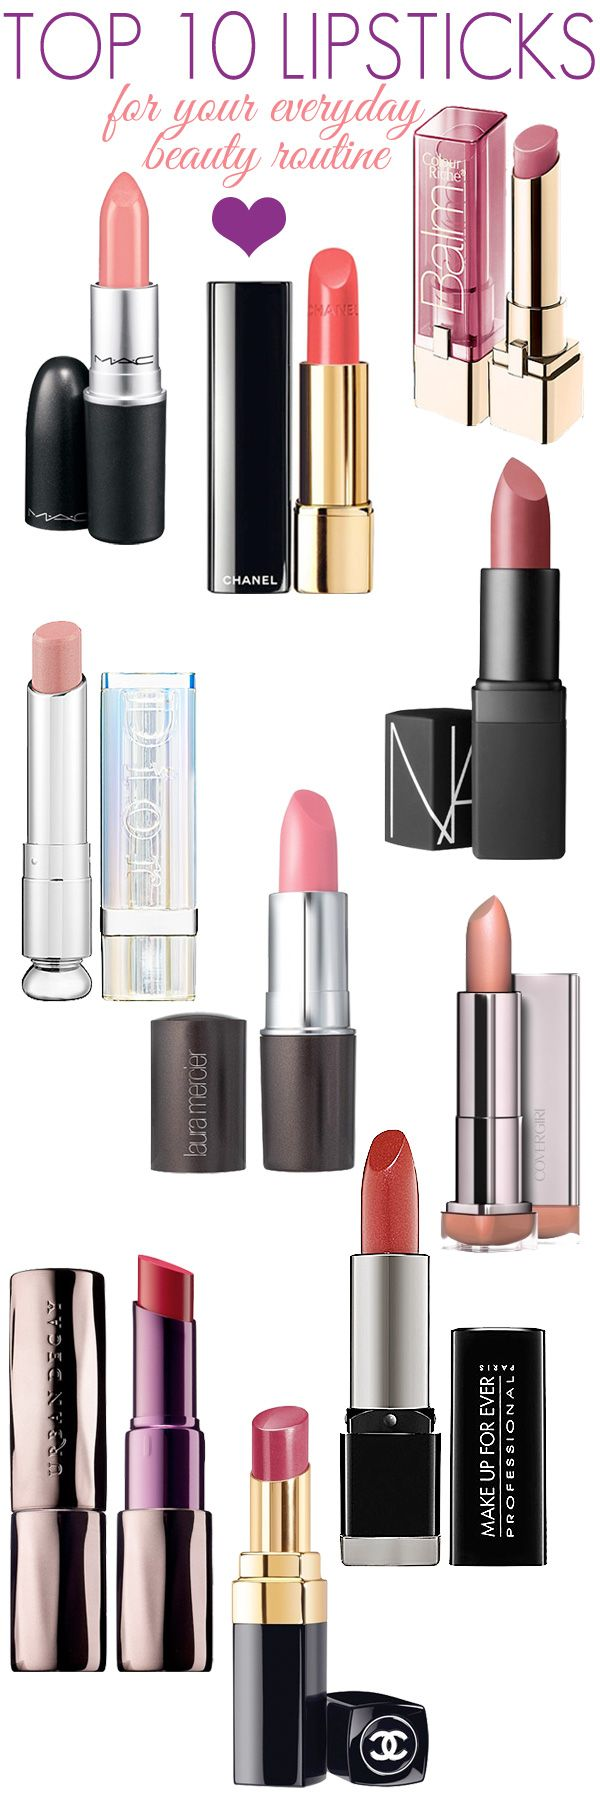 Today is National Lipstick Day! I bet you didn't know that, did you? In 1923, the swivel tube li...